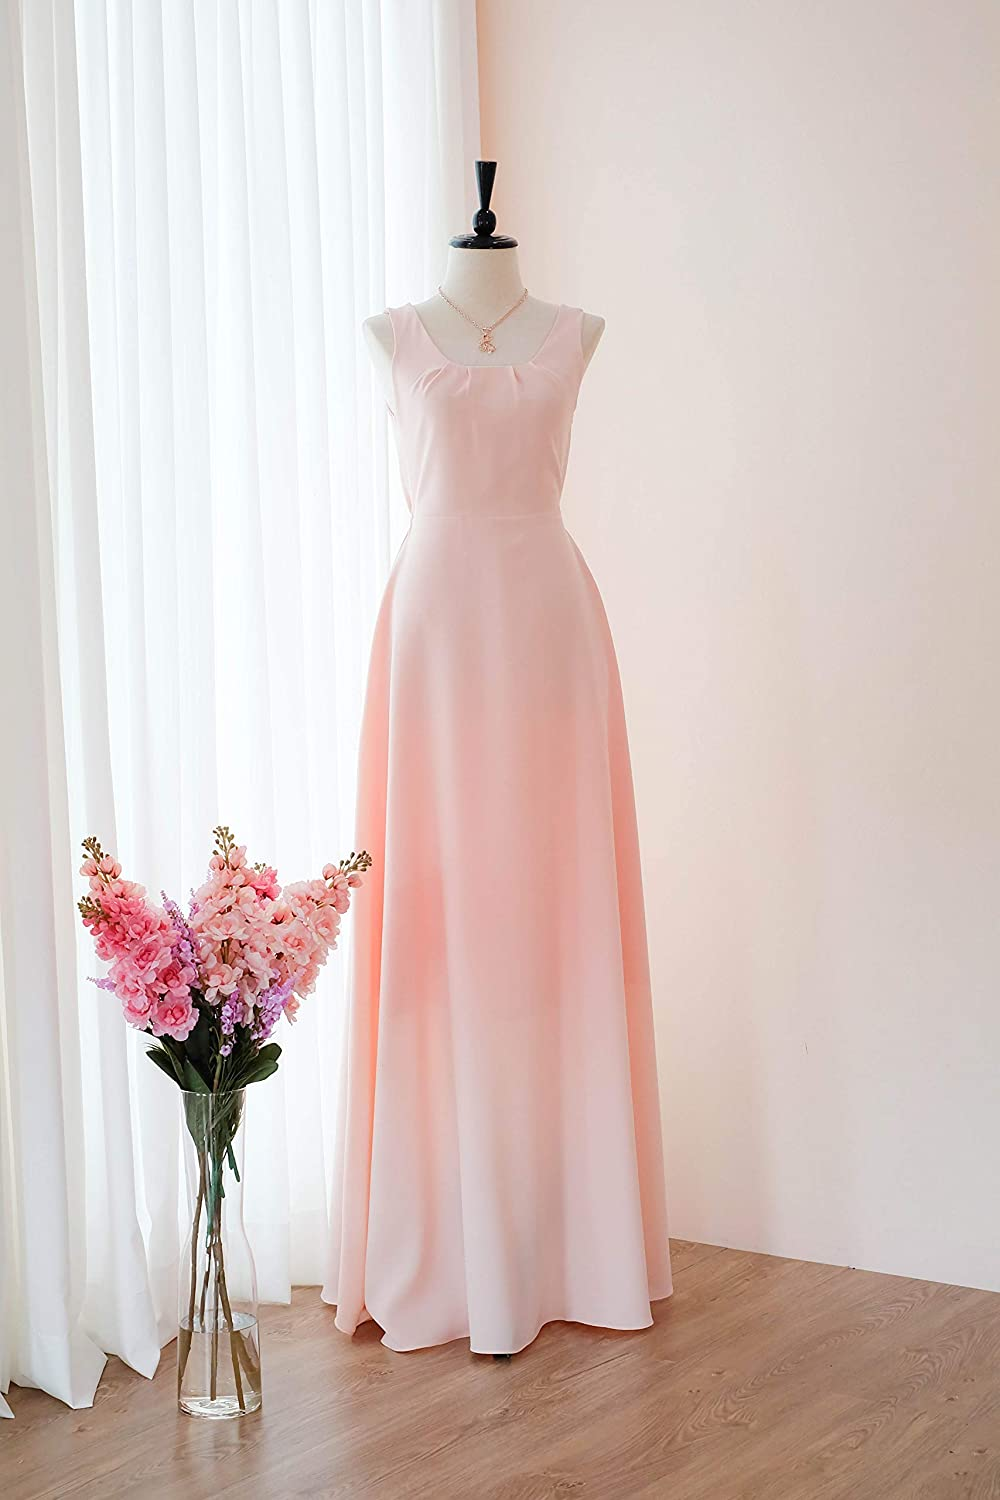 e8115681270 Amazon.com  Pink blush bridesmaid dresses LONG Prom party wedding cocktail  evening gown  Handmade